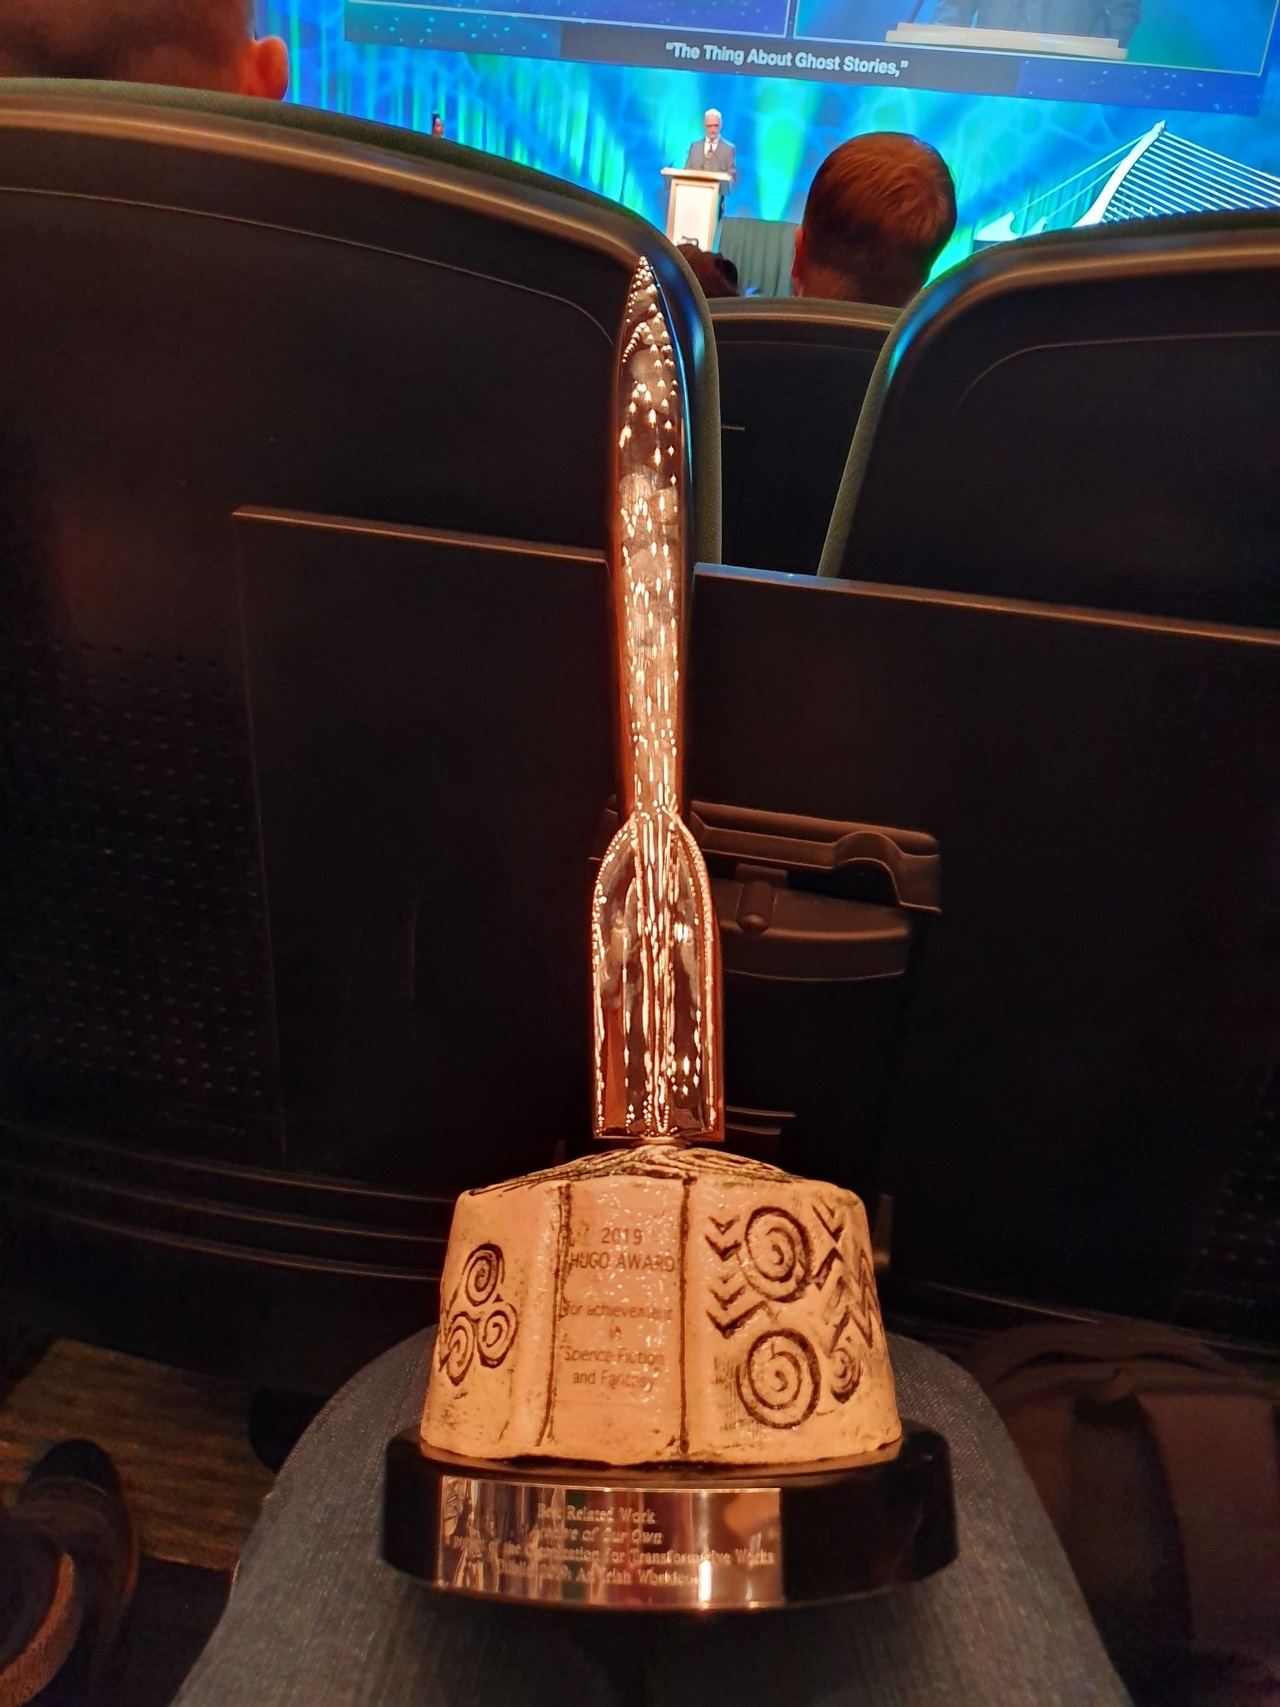 The Hugo Award won by Archive of Our Own.